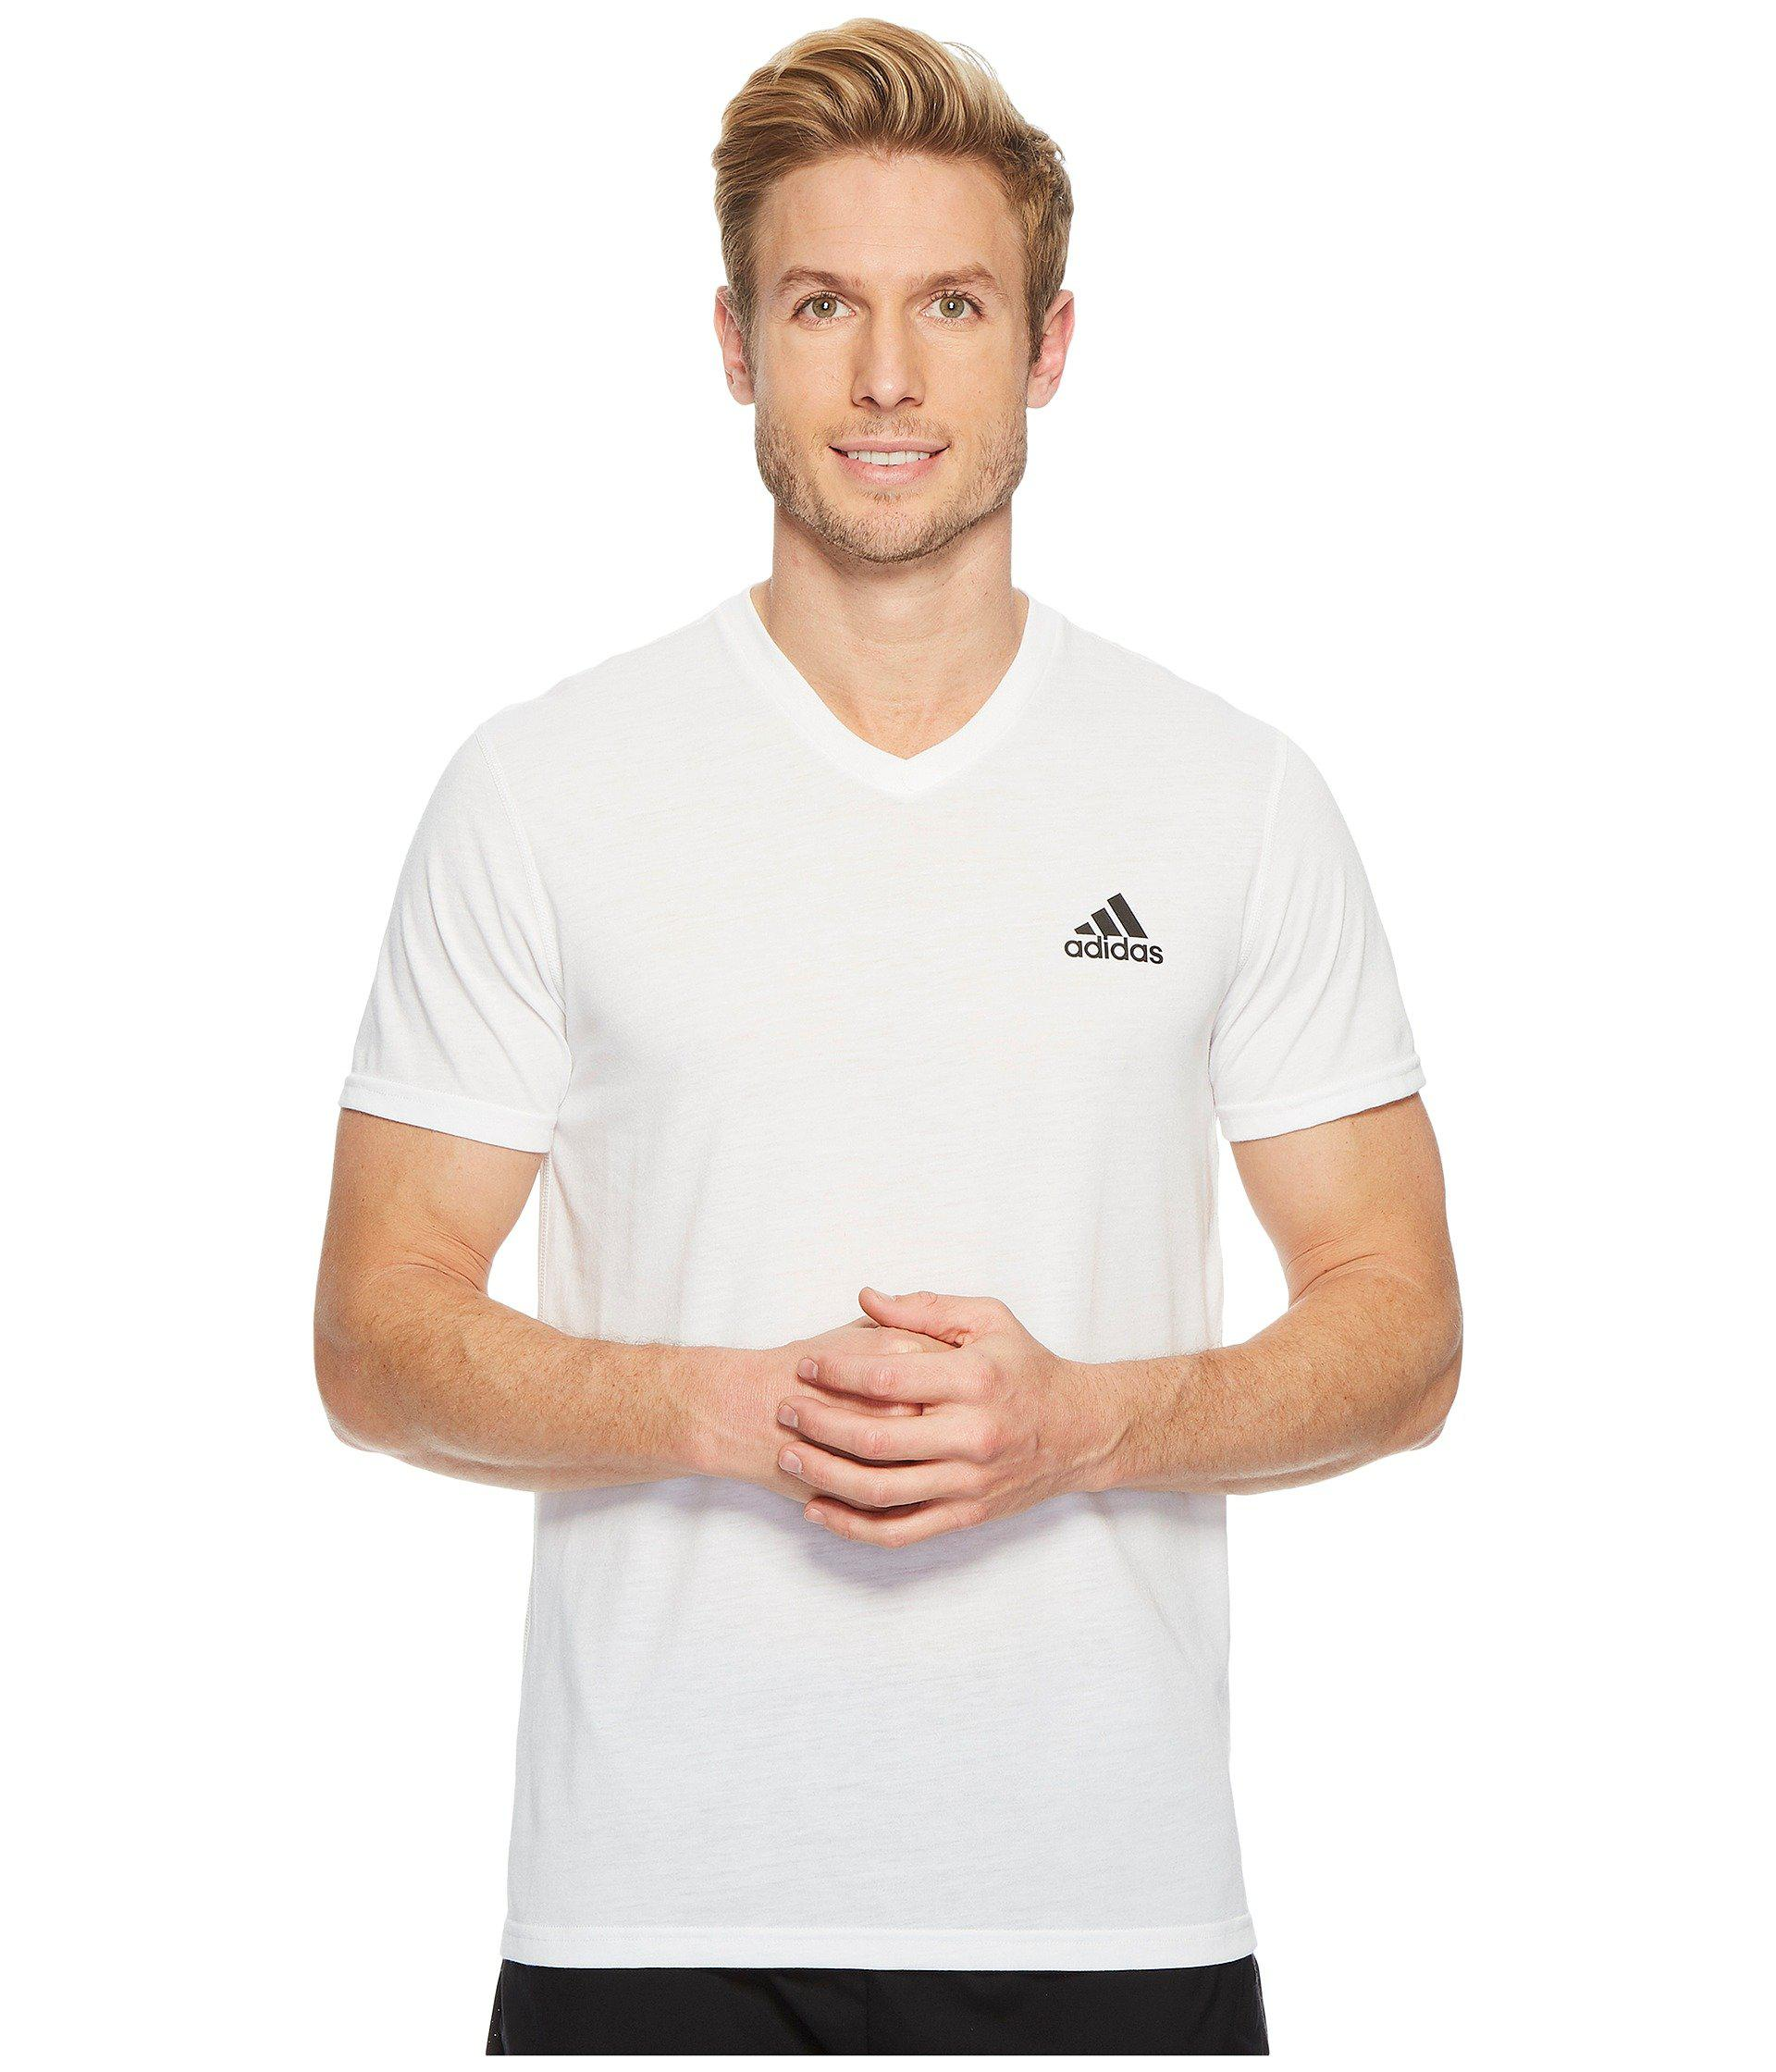 adidas Synthetic Ultimate V-neck Short Sleeve Tee in White for Men ...